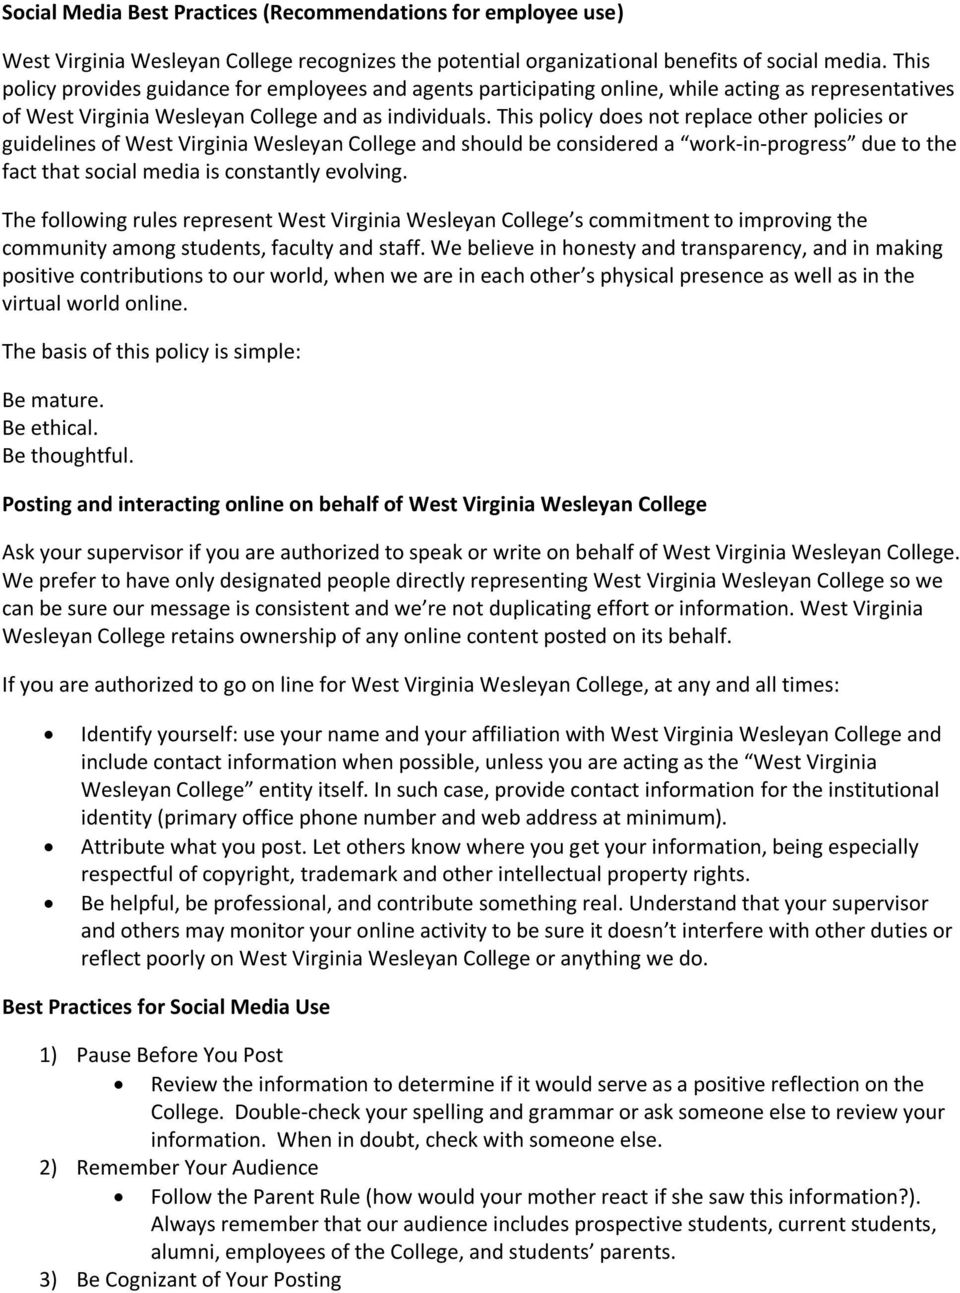 This policy does not replace other policies or guidelines of West Virginia Wesleyan College and should be considered a work-in-progress due to the fact that social media is constantly evolving.